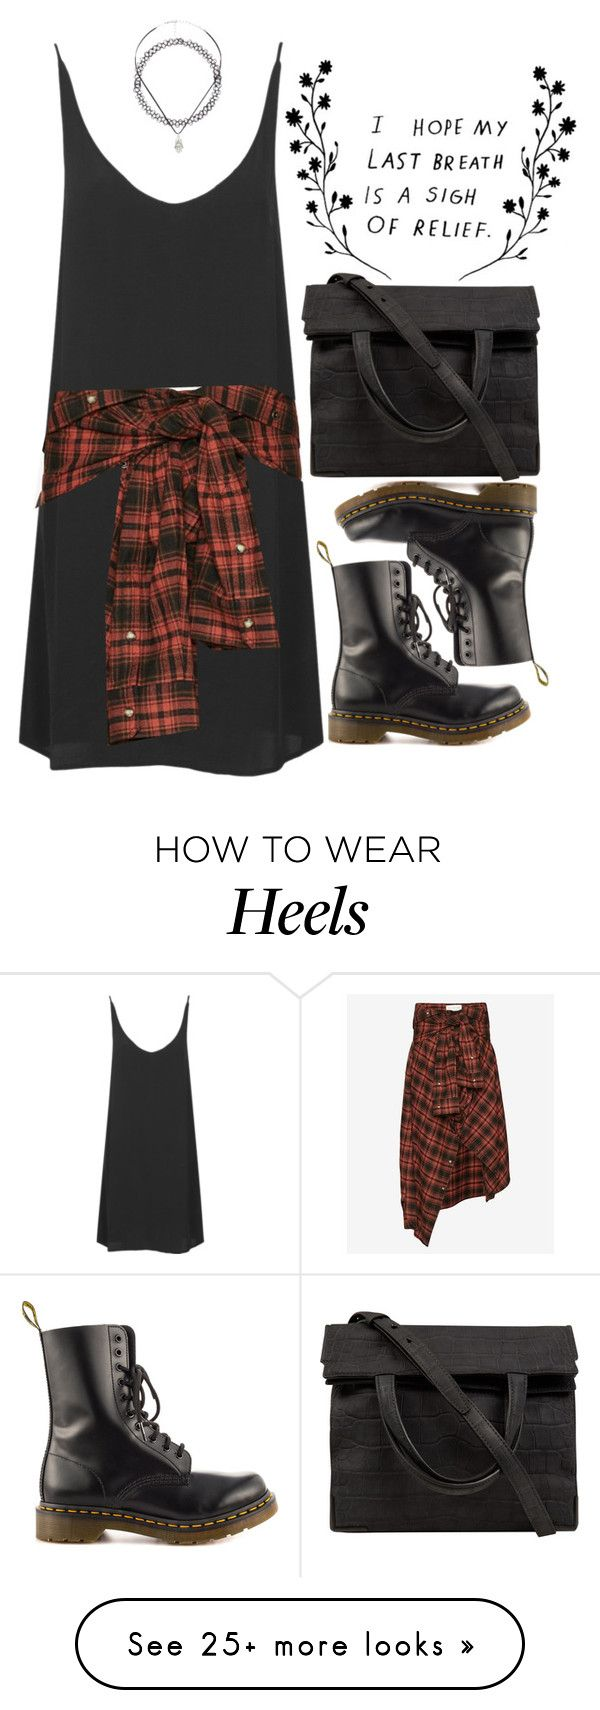 """""""Freja"""" by sombrasdelcarax on Polyvore featuring Topshop, Faith Connexion, Charlotte Russe, Dr. Martens and Alexander Wang"""